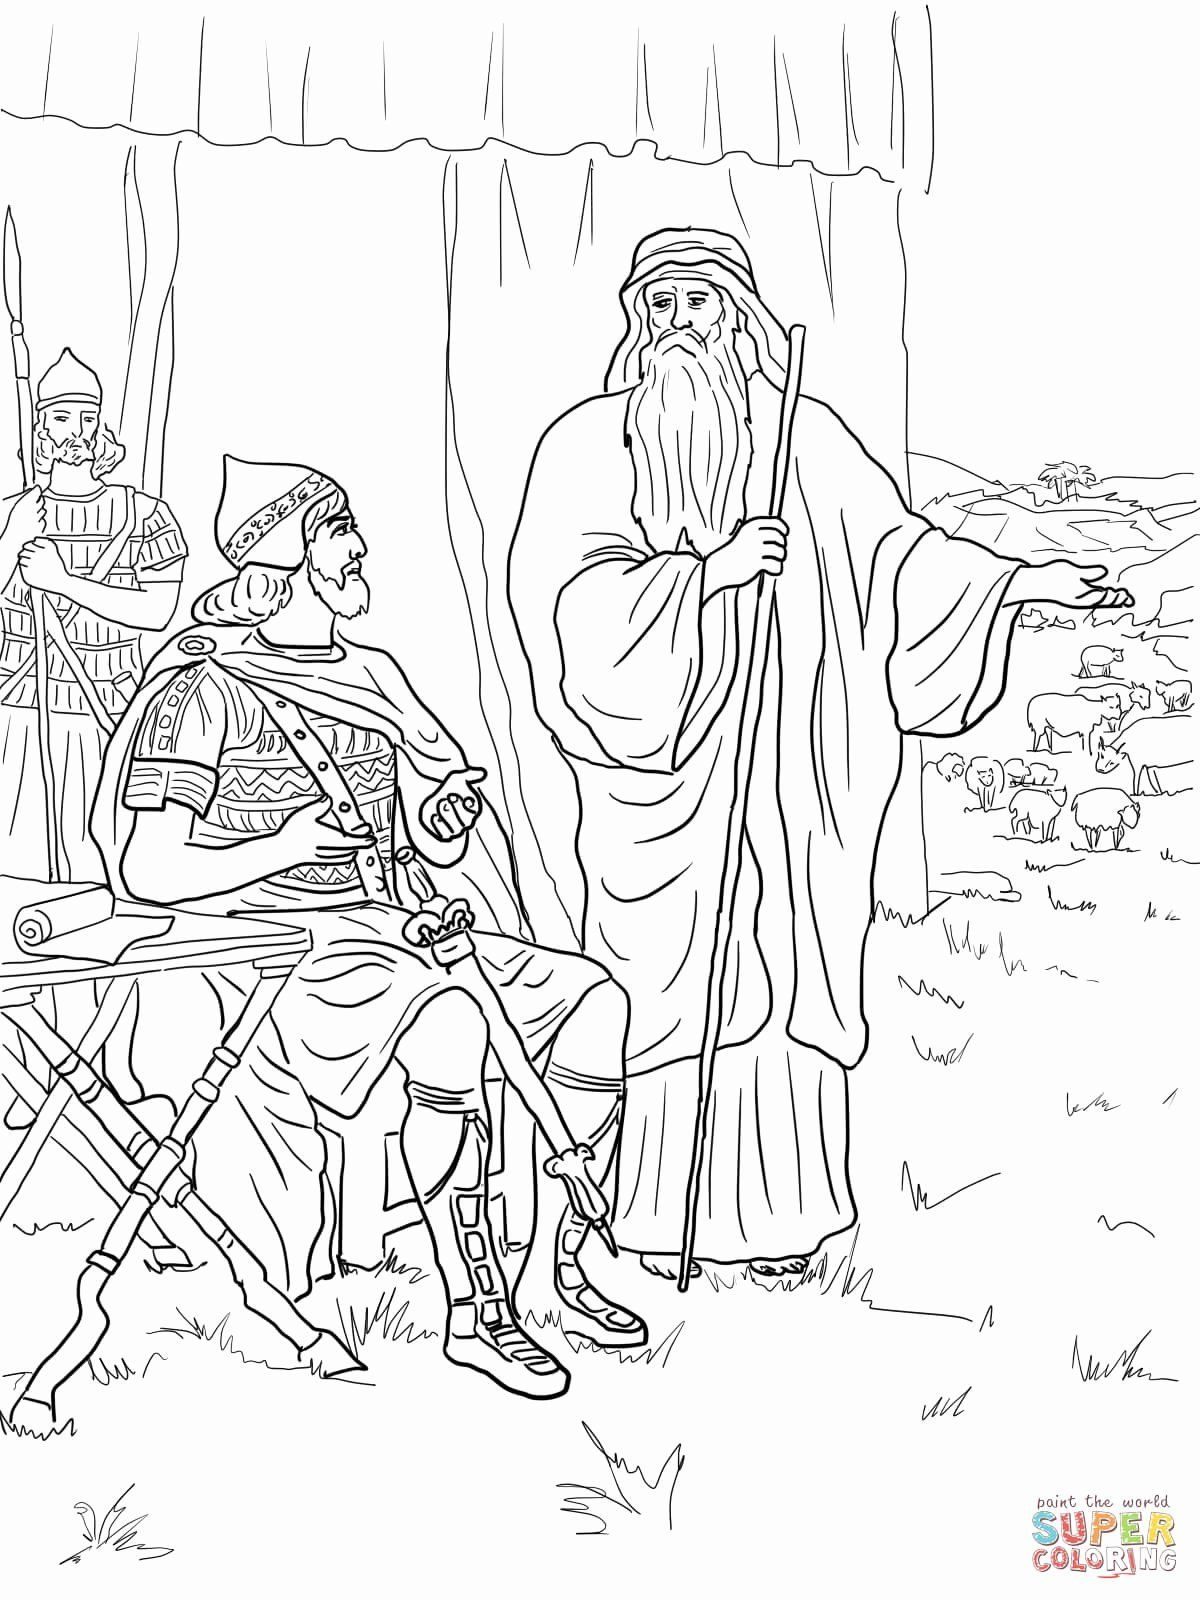 28 King Saul Coloring Page In